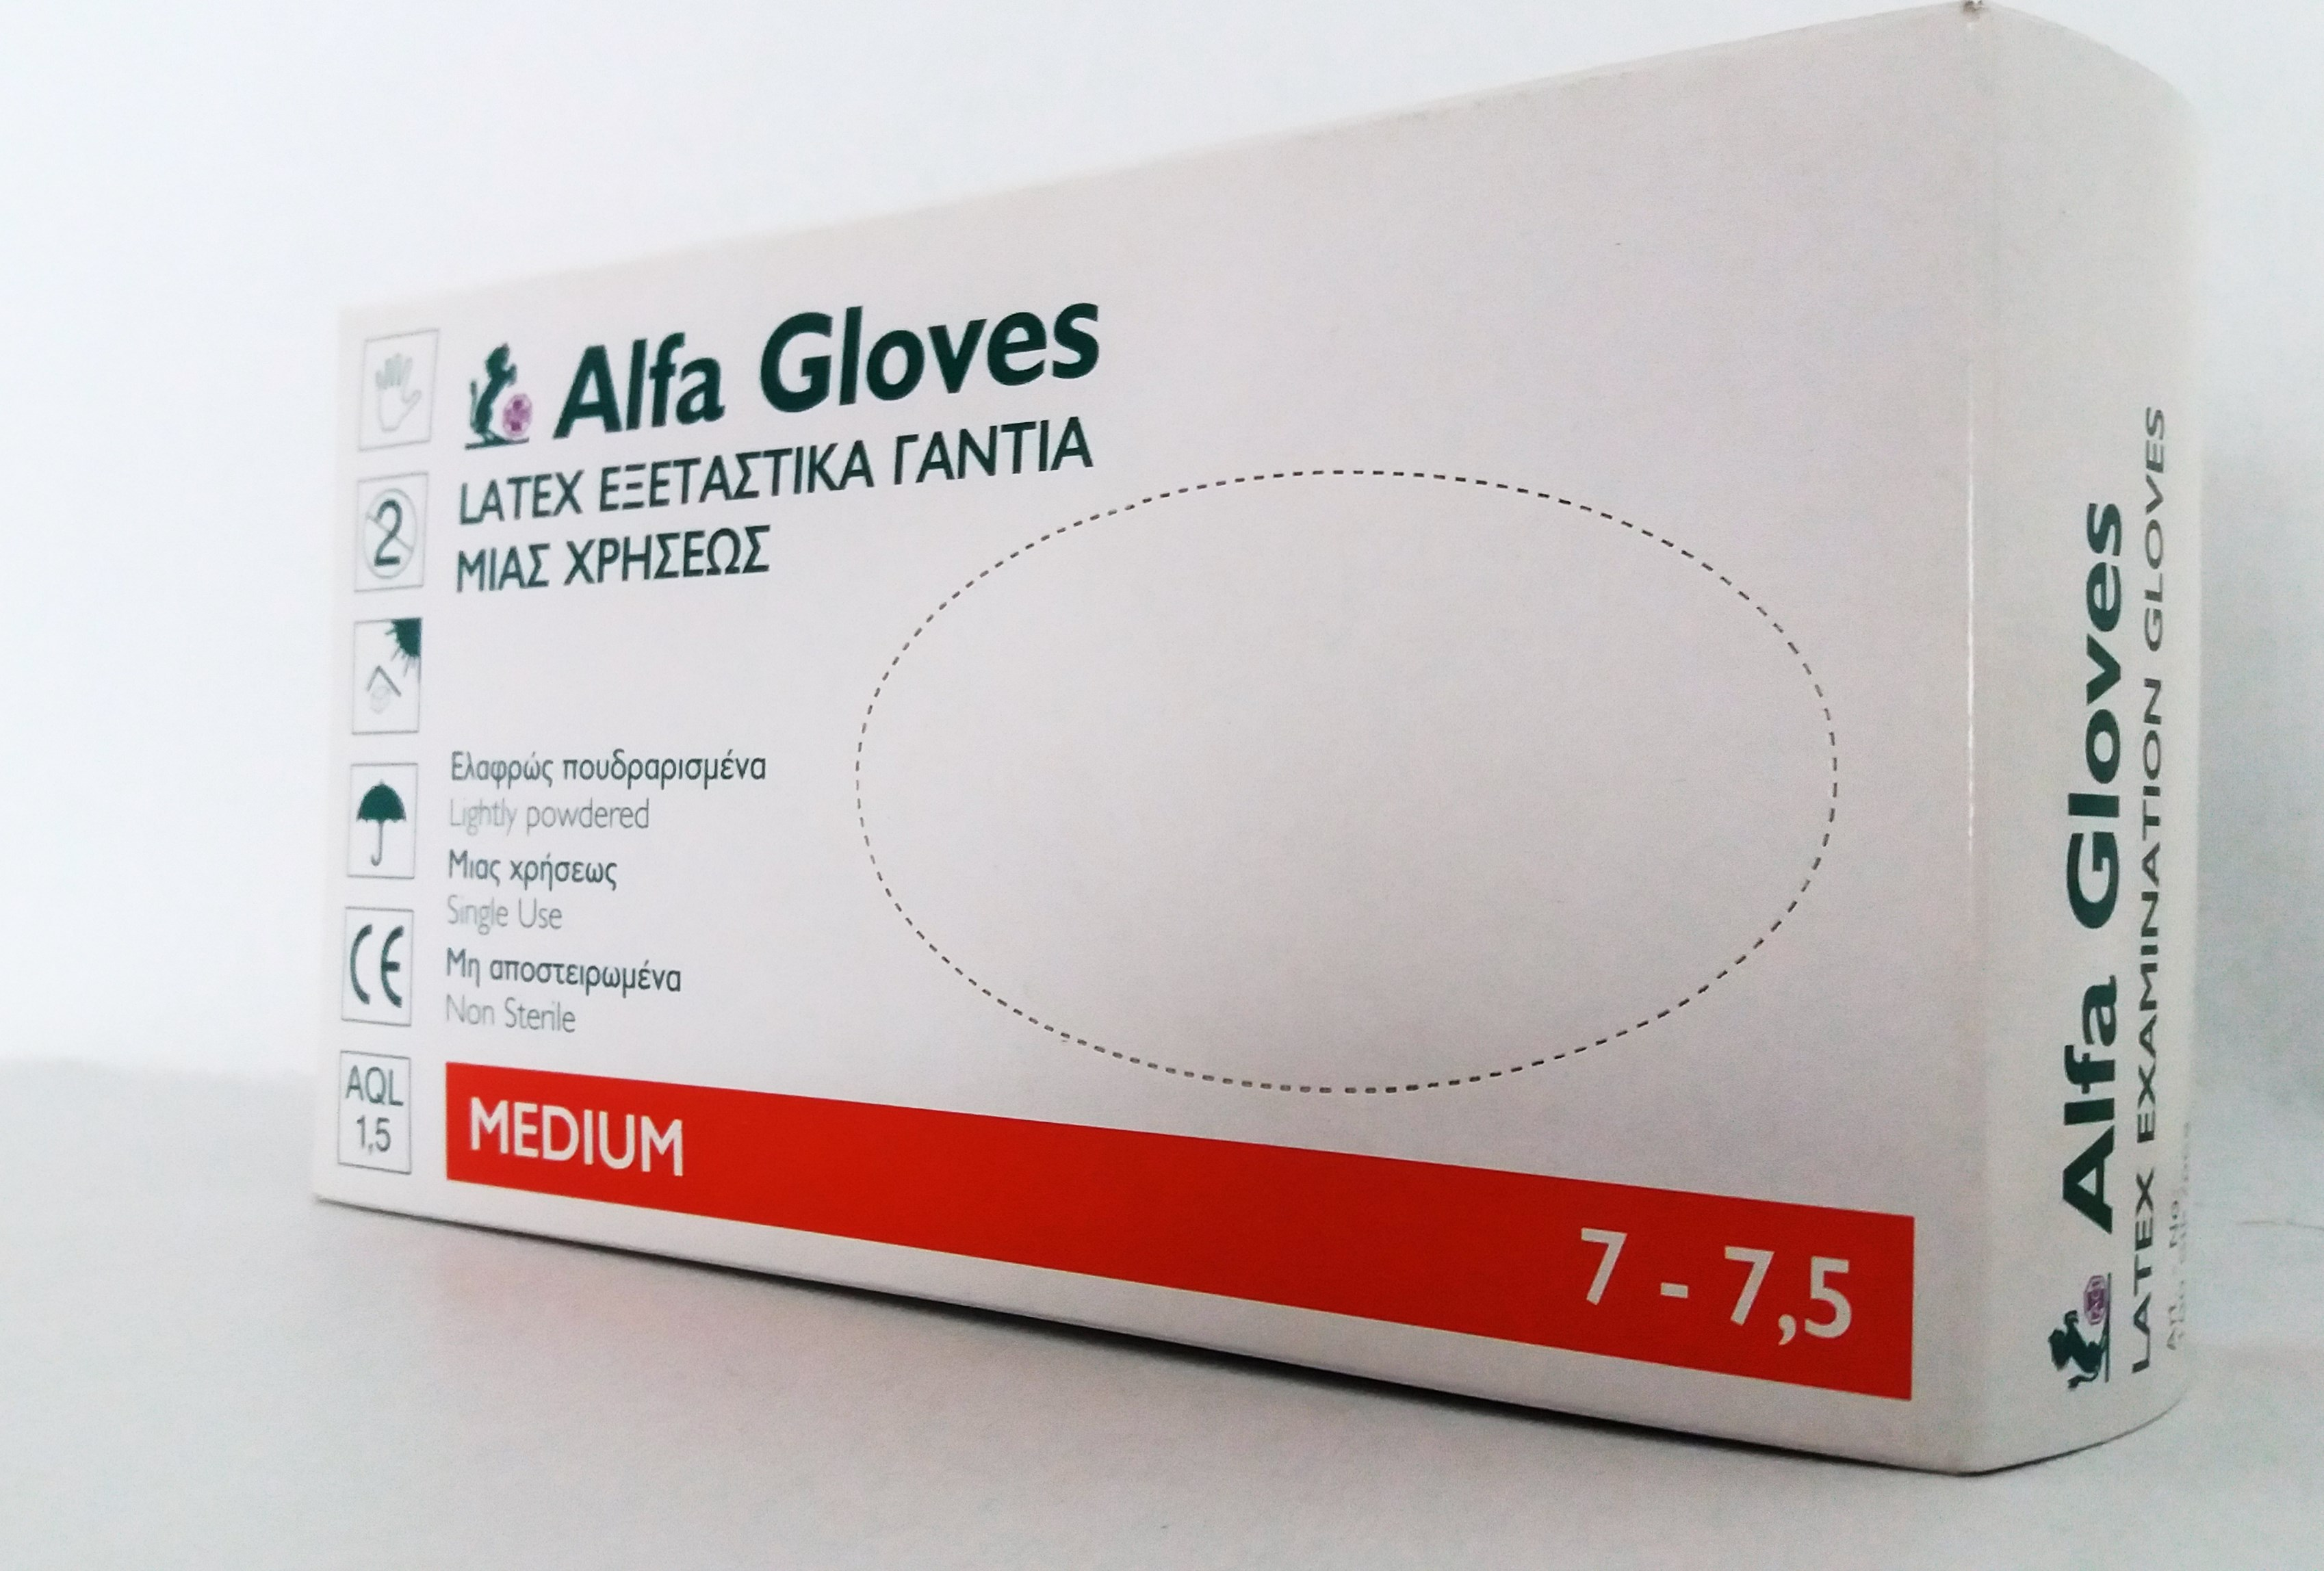 Examination gloves Alfa Gloves powdered, Medium